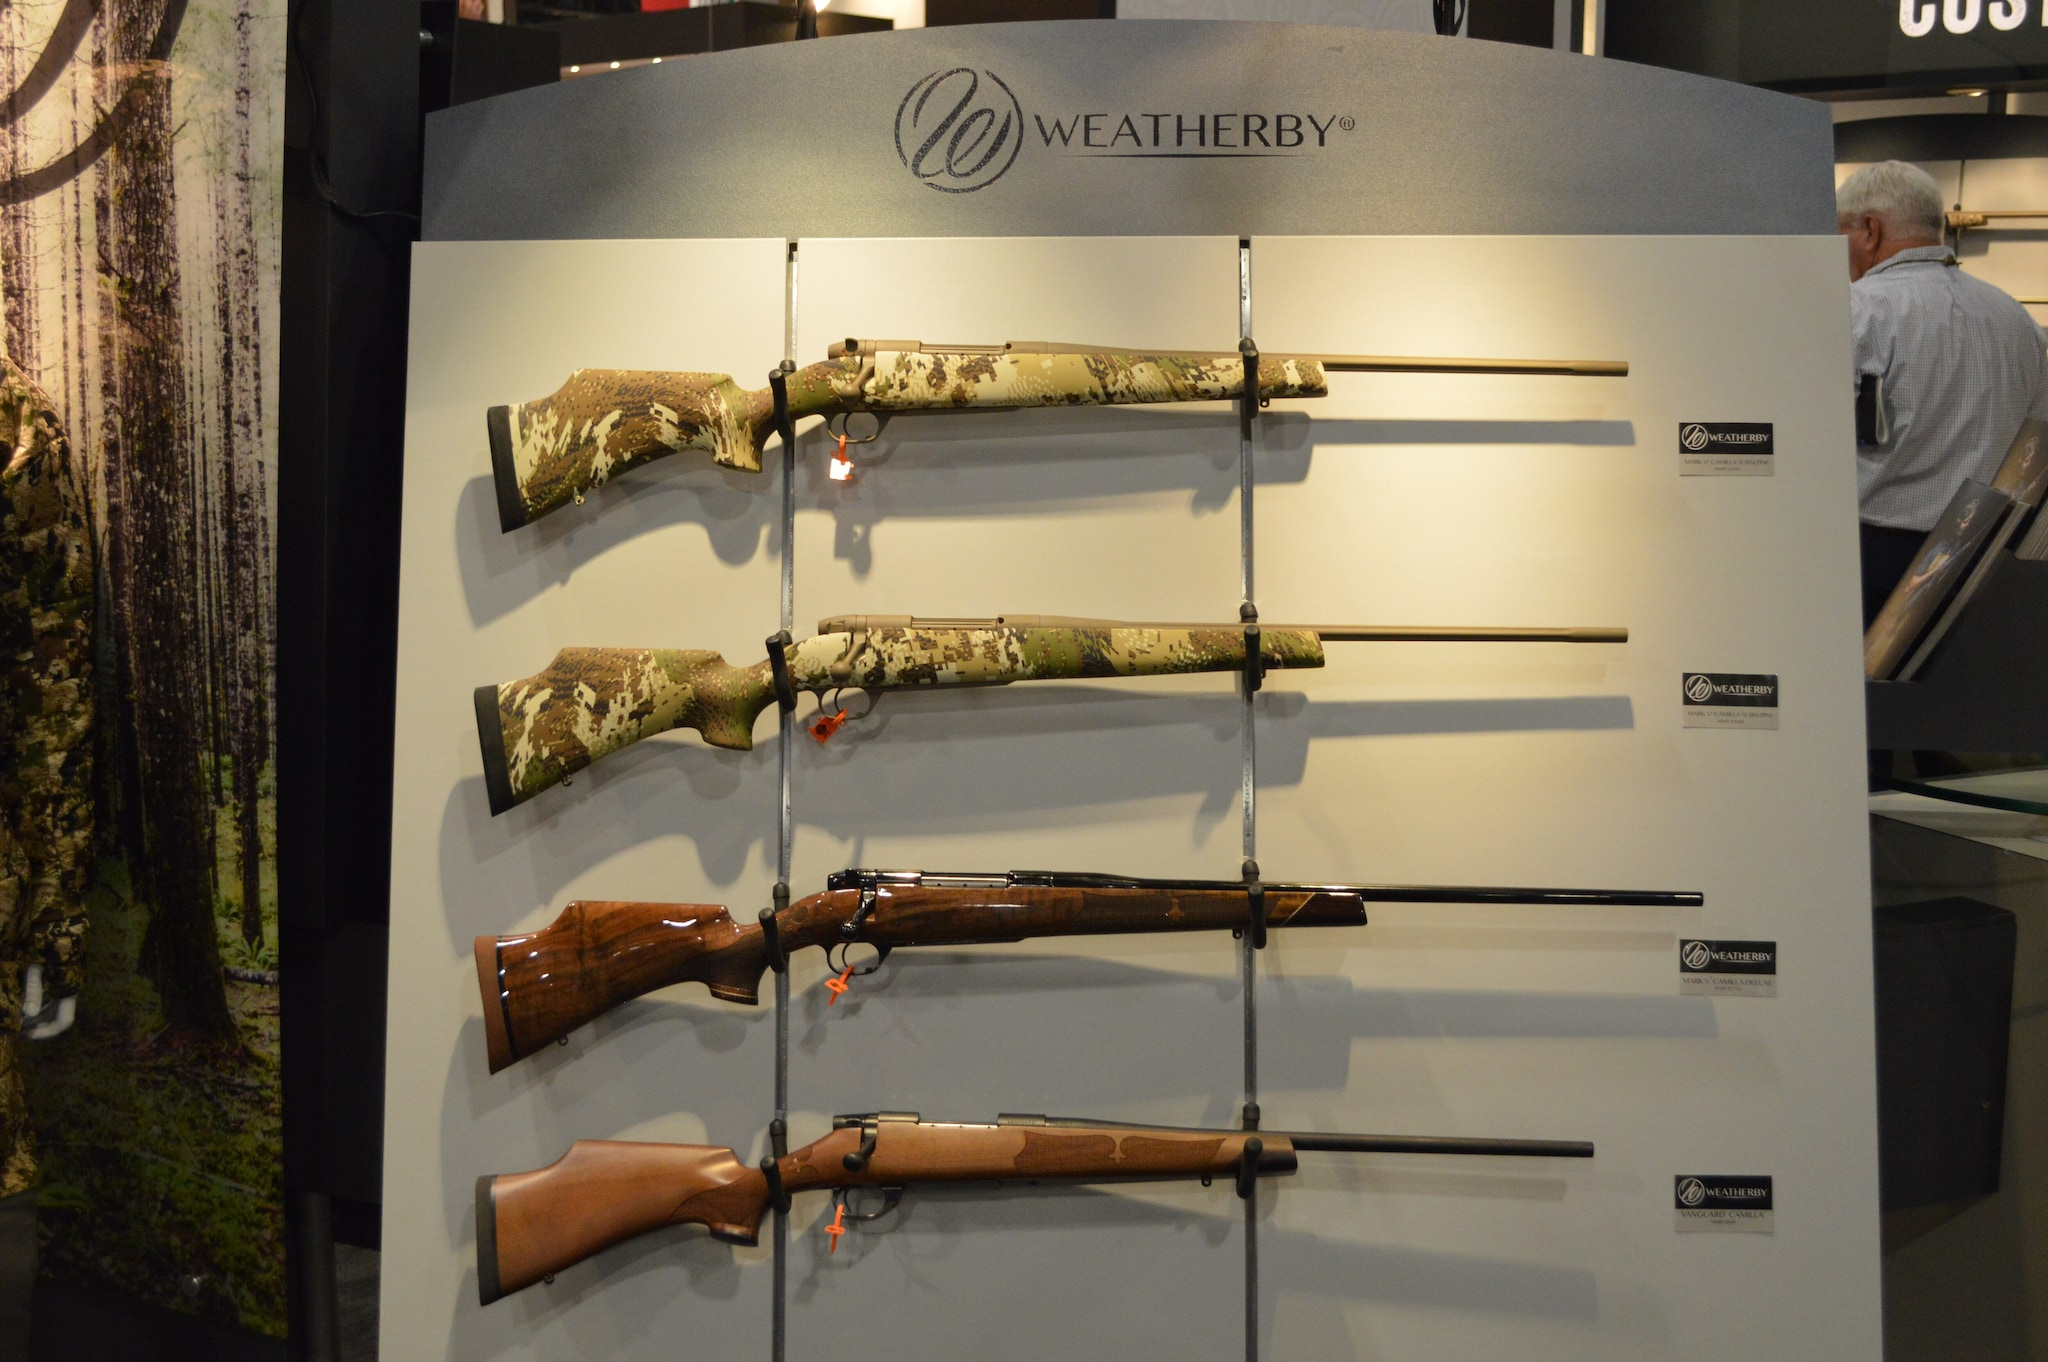 The biggest news from Weatherby was annoucement of the move from California to Wyoming. The introduction of multiple models of women's Camilla Mark V rifles in expanded chambering is also quite exciting. (Photo: Kristin Alberts/Guns.com)